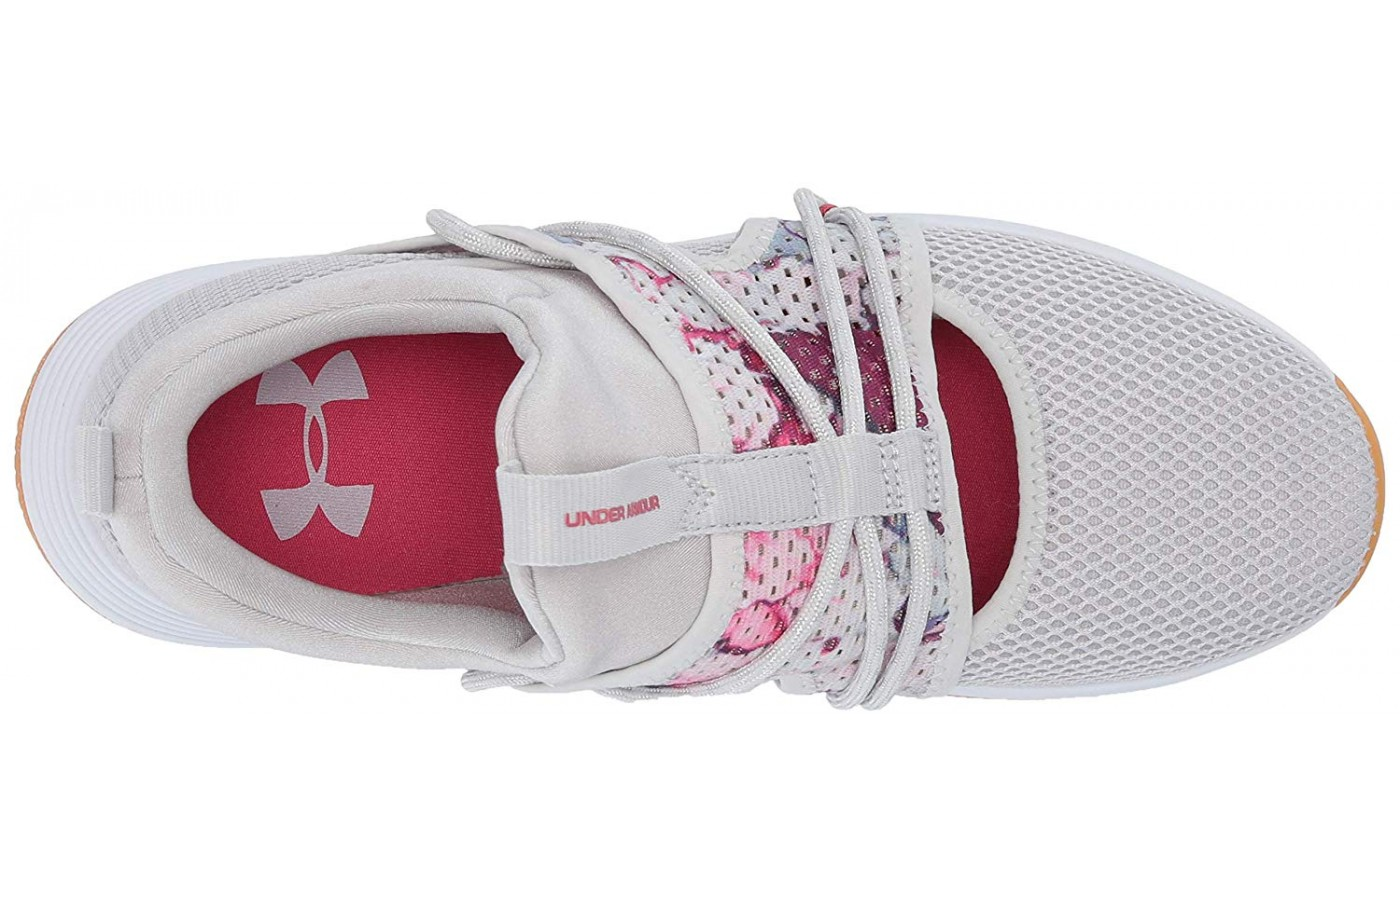 Under Armour Breathe Sola Upper